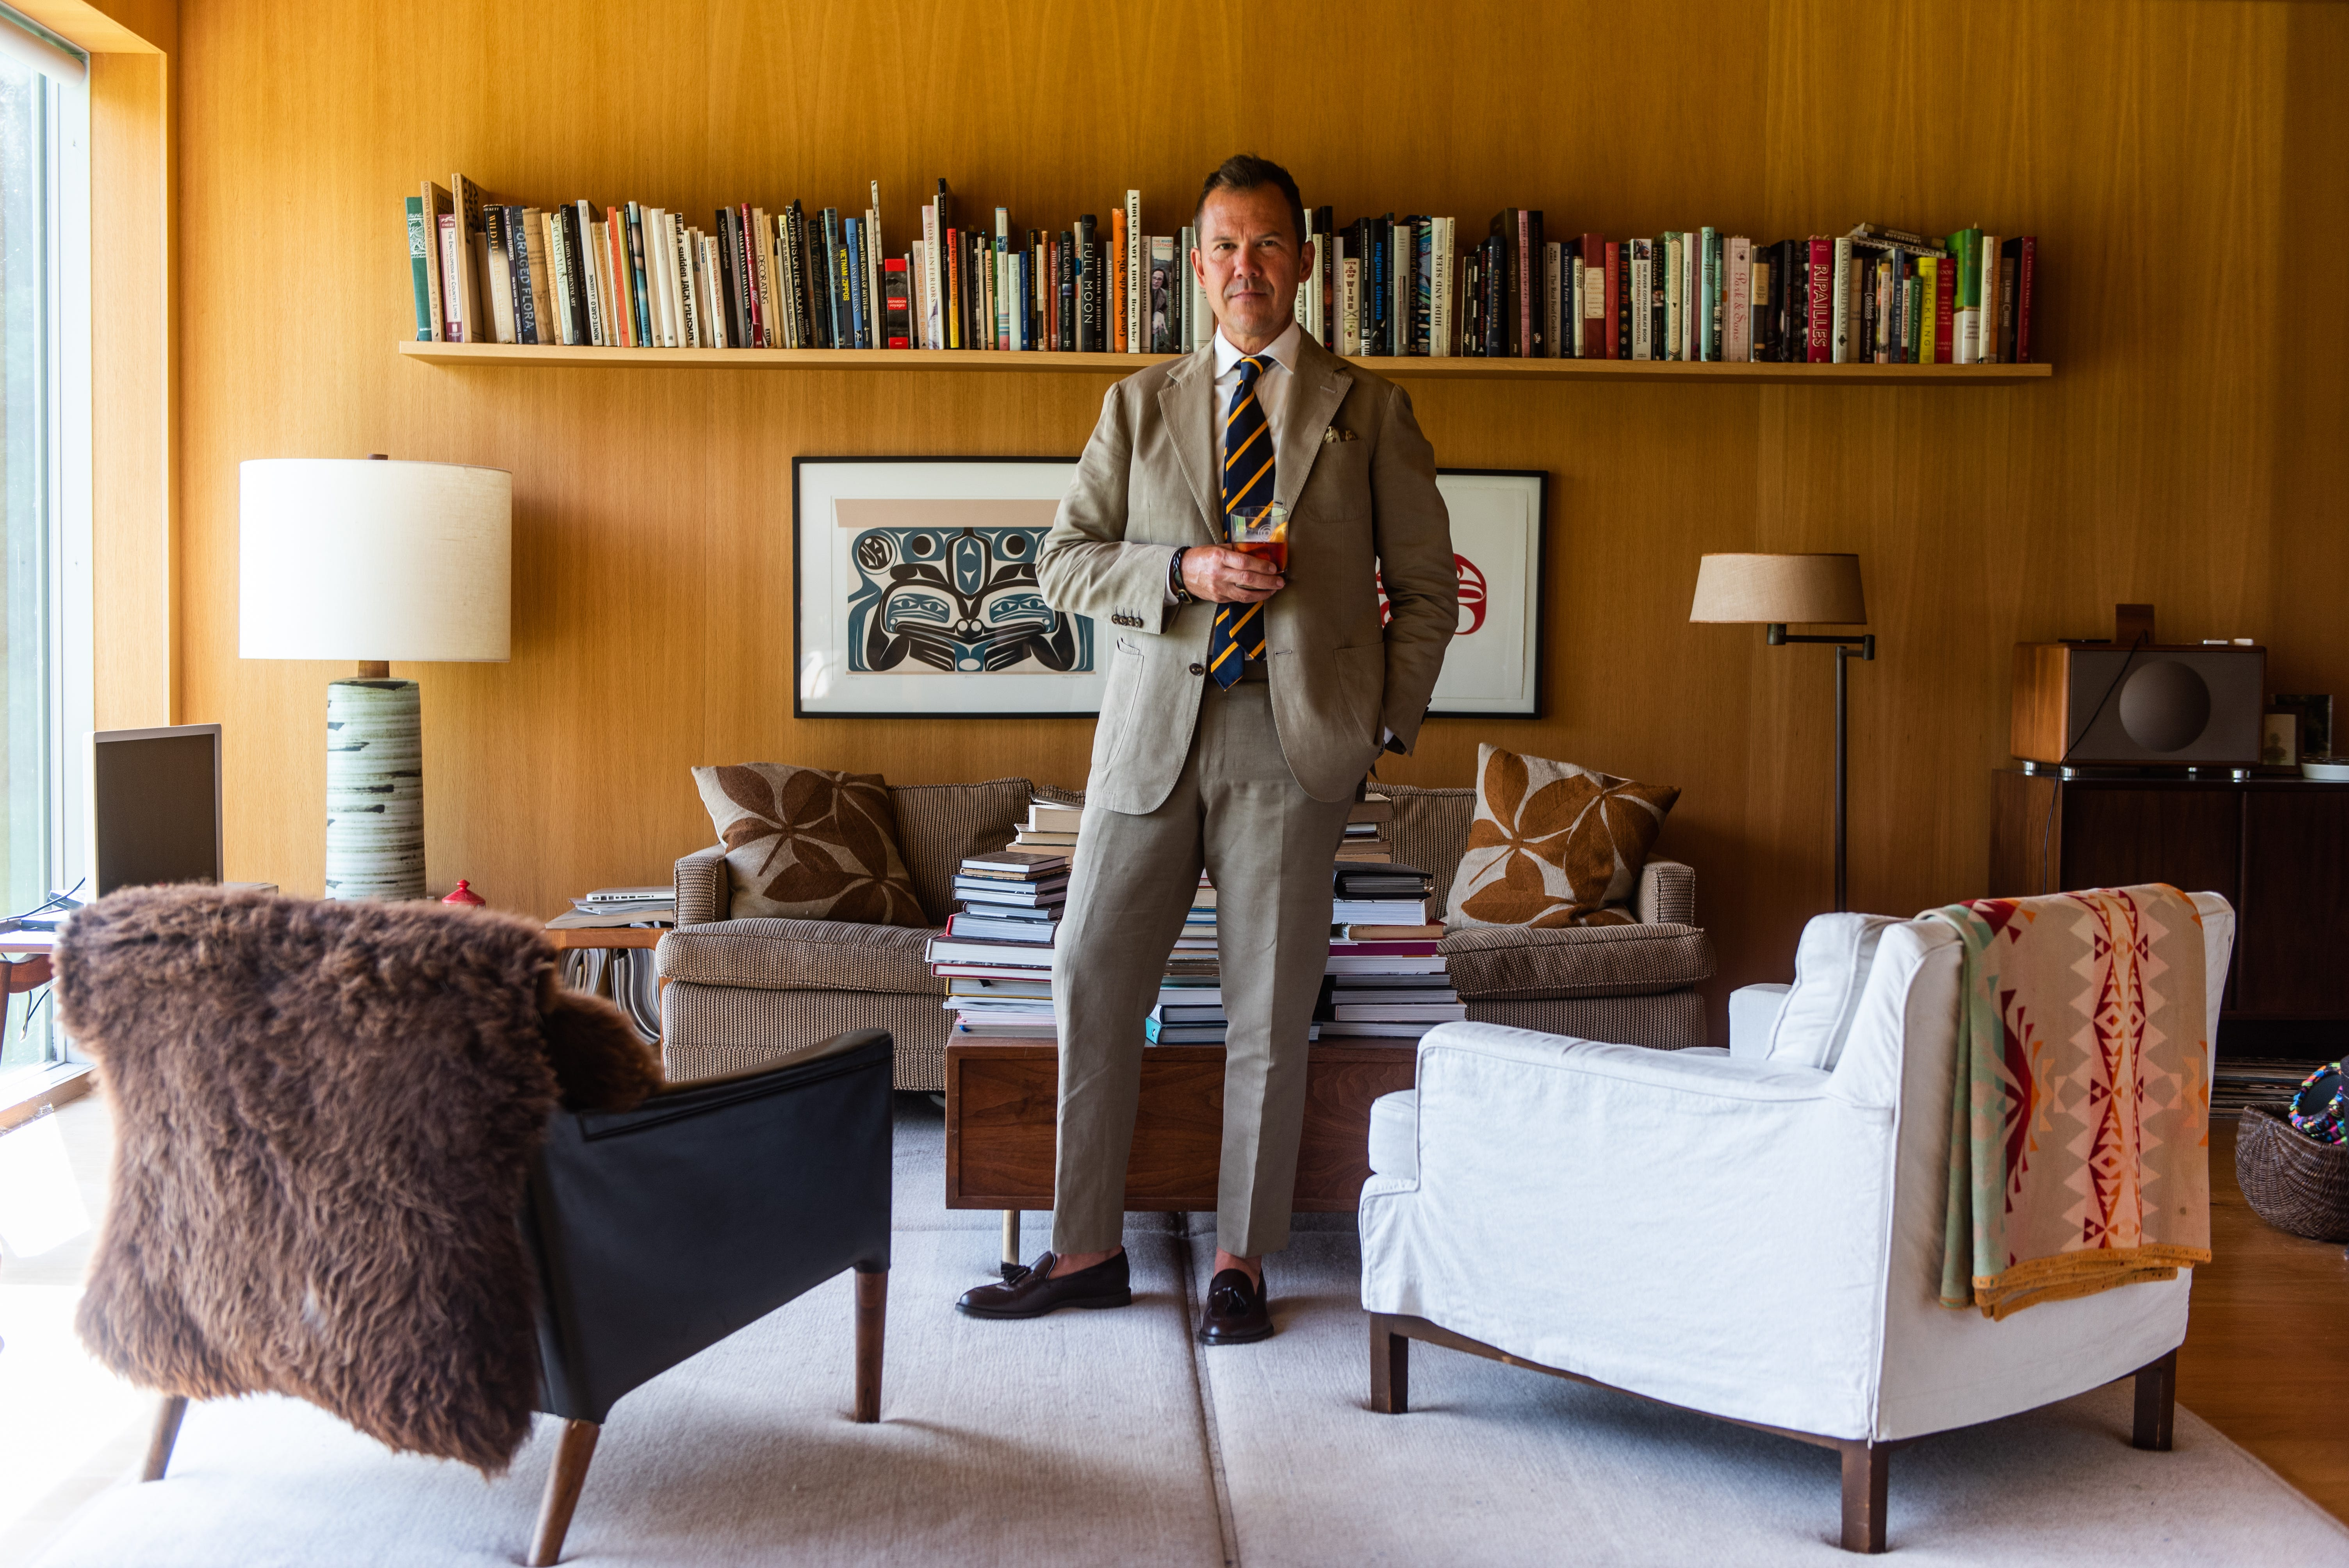 Wm Brown magazine and its founder celebrate the 'manly country squire' lifestyle